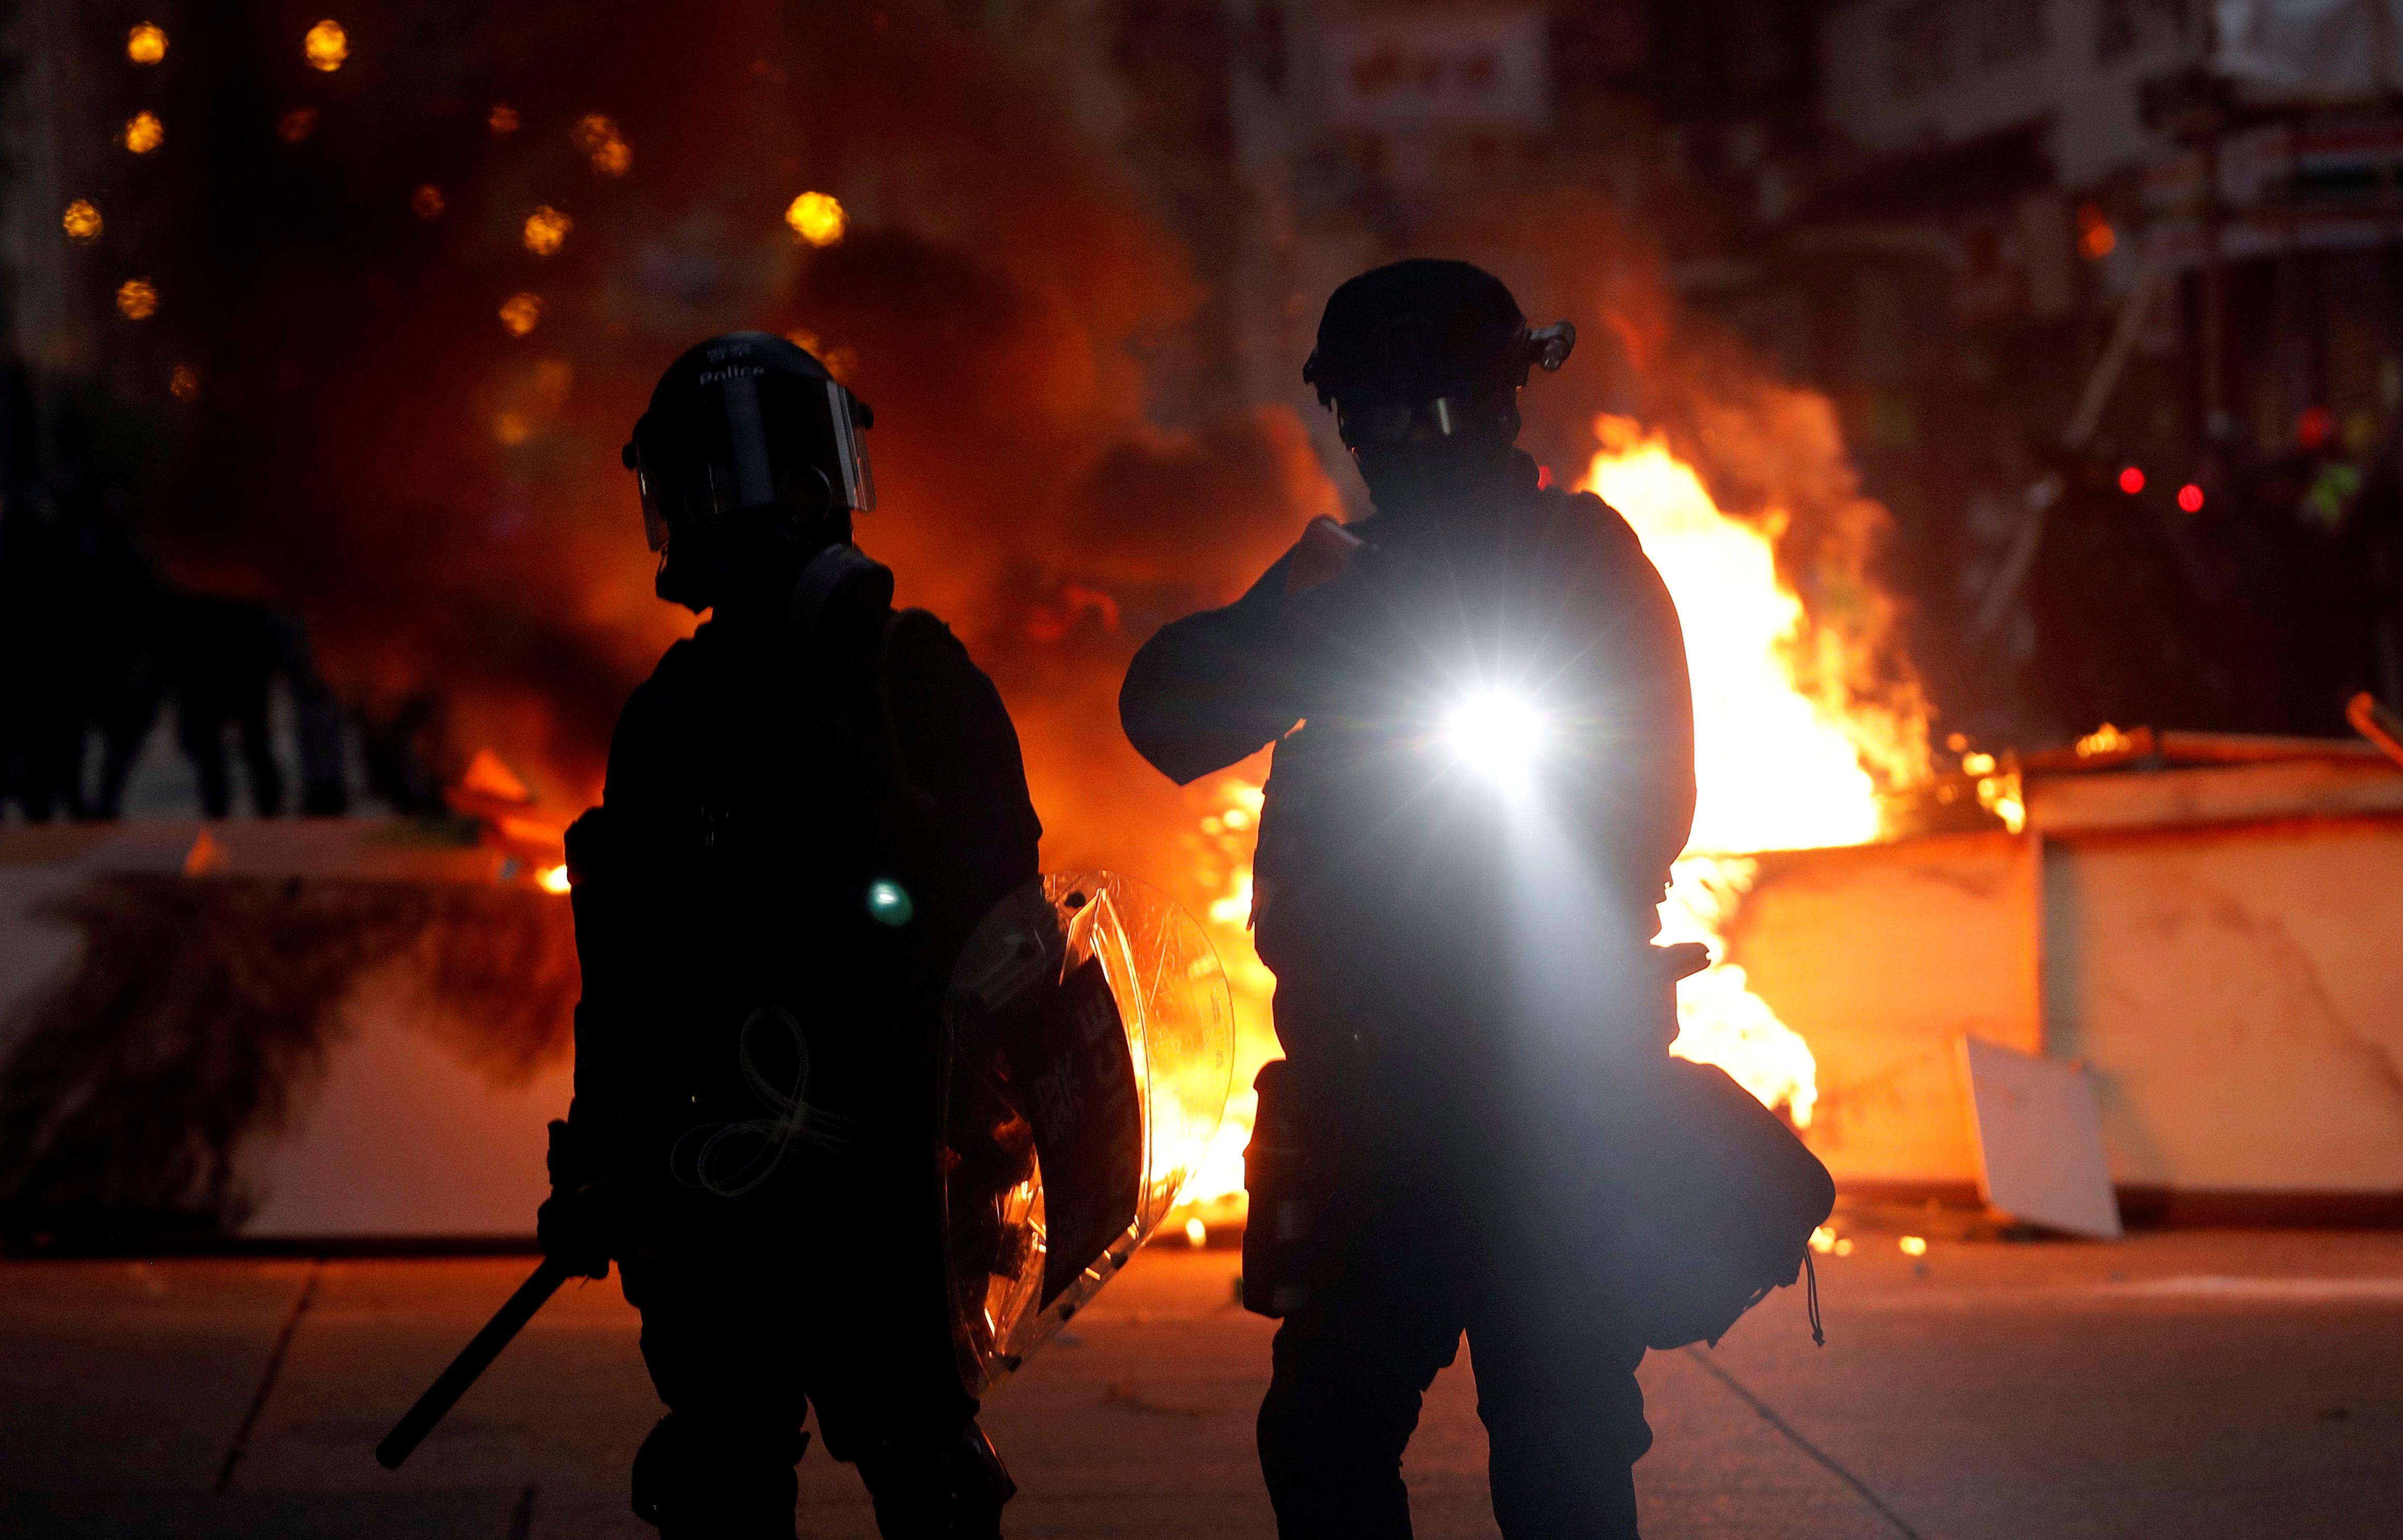 Hong Kong riot police teargas, chase protesters, residents jeer...